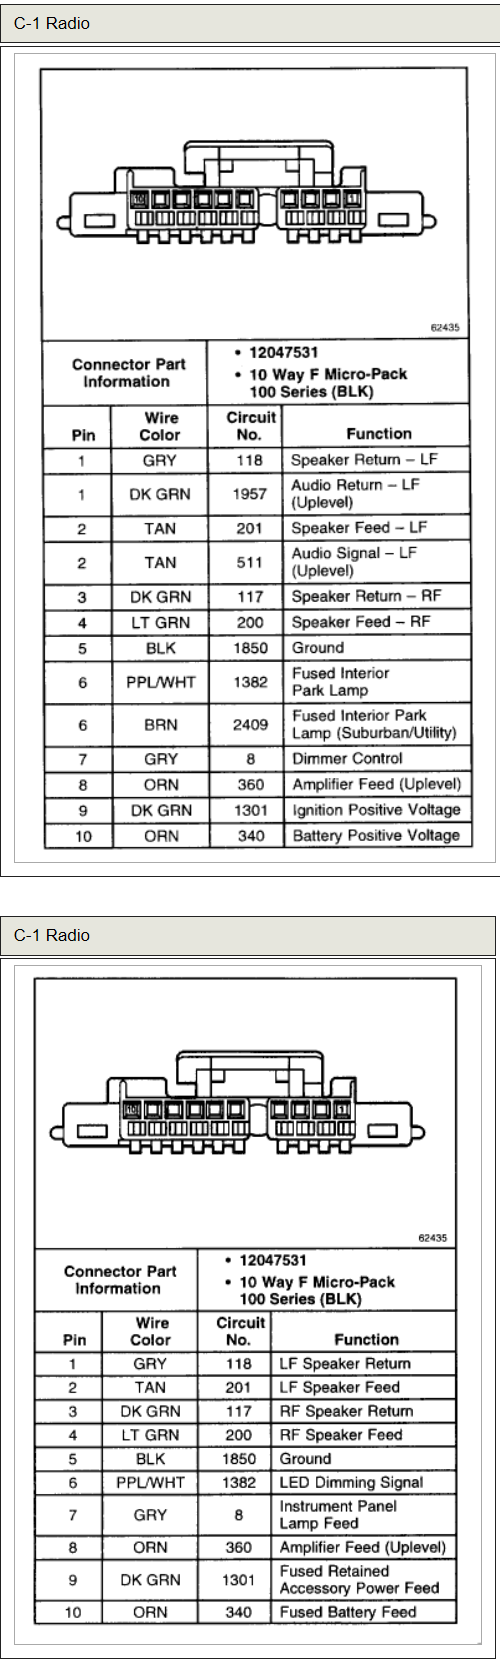 2007 chevy colorado stereo wiring diagram 2007 2005 chevy colorado stereo wiring diagram wiring diagrams on 2007 chevy colorado stereo wiring diagram